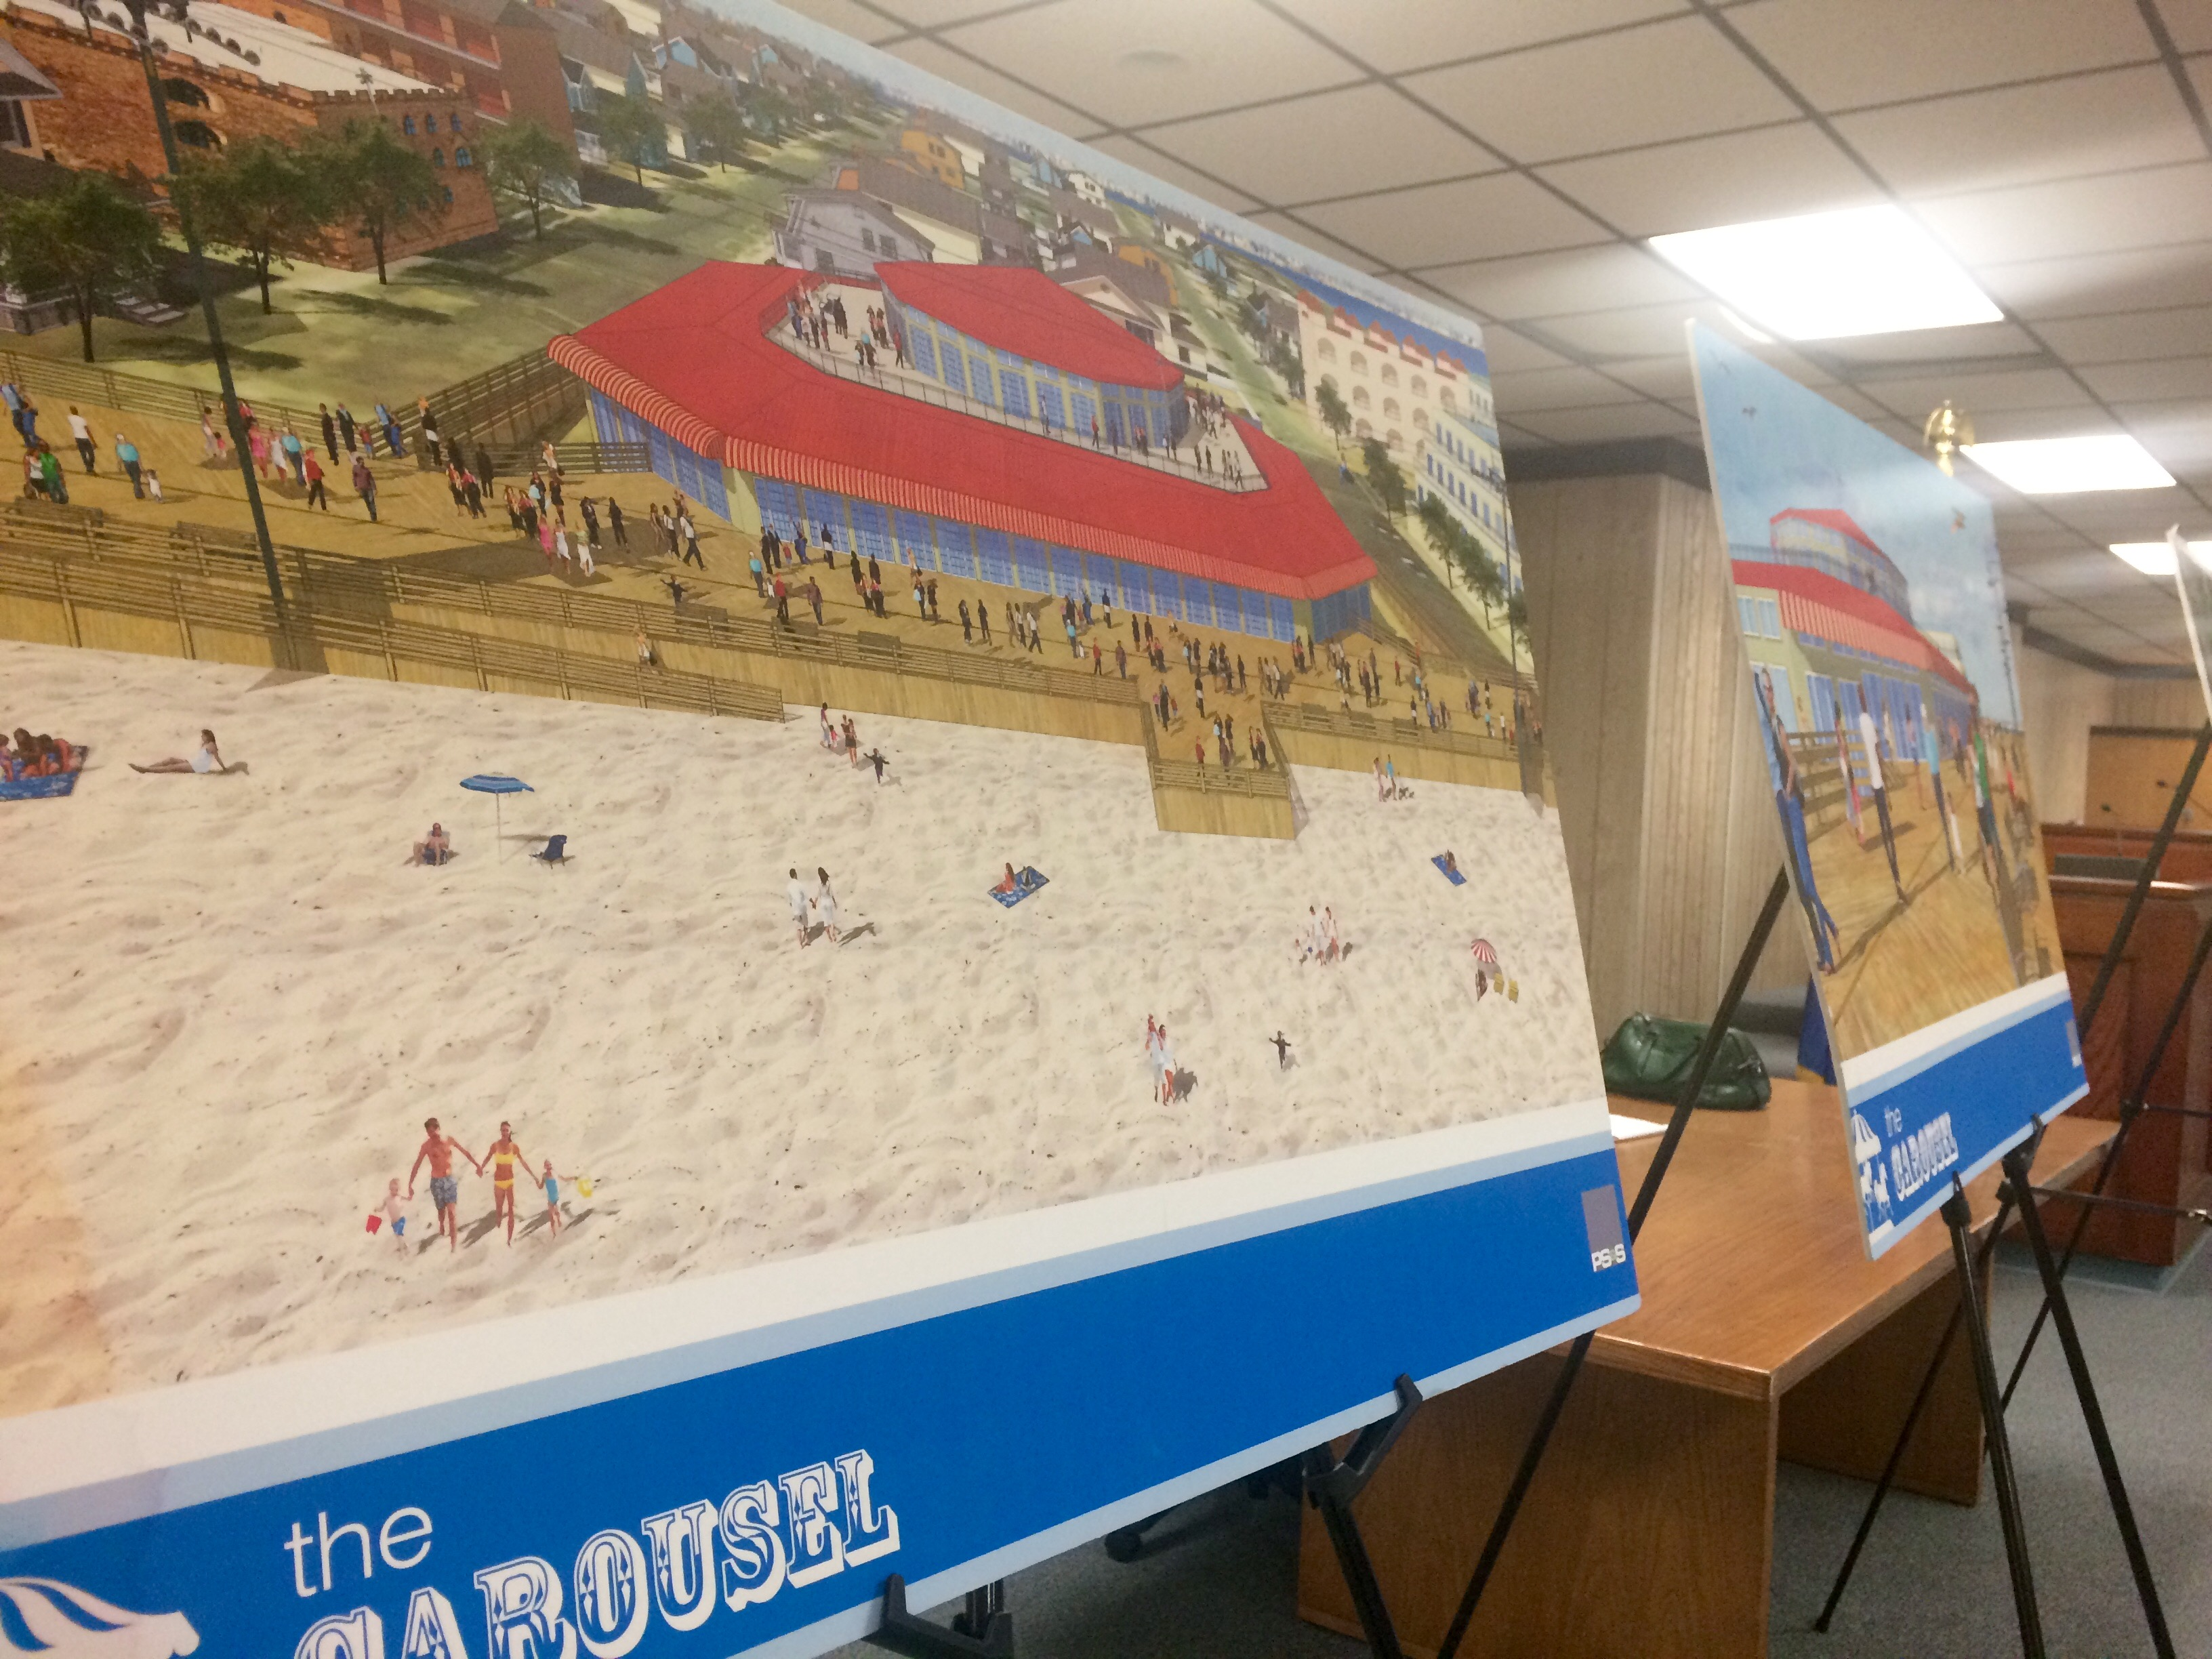 Plans on display during the March 22 hearing of a proposed beachfront land swap between Seaside Heights and Casino Pier